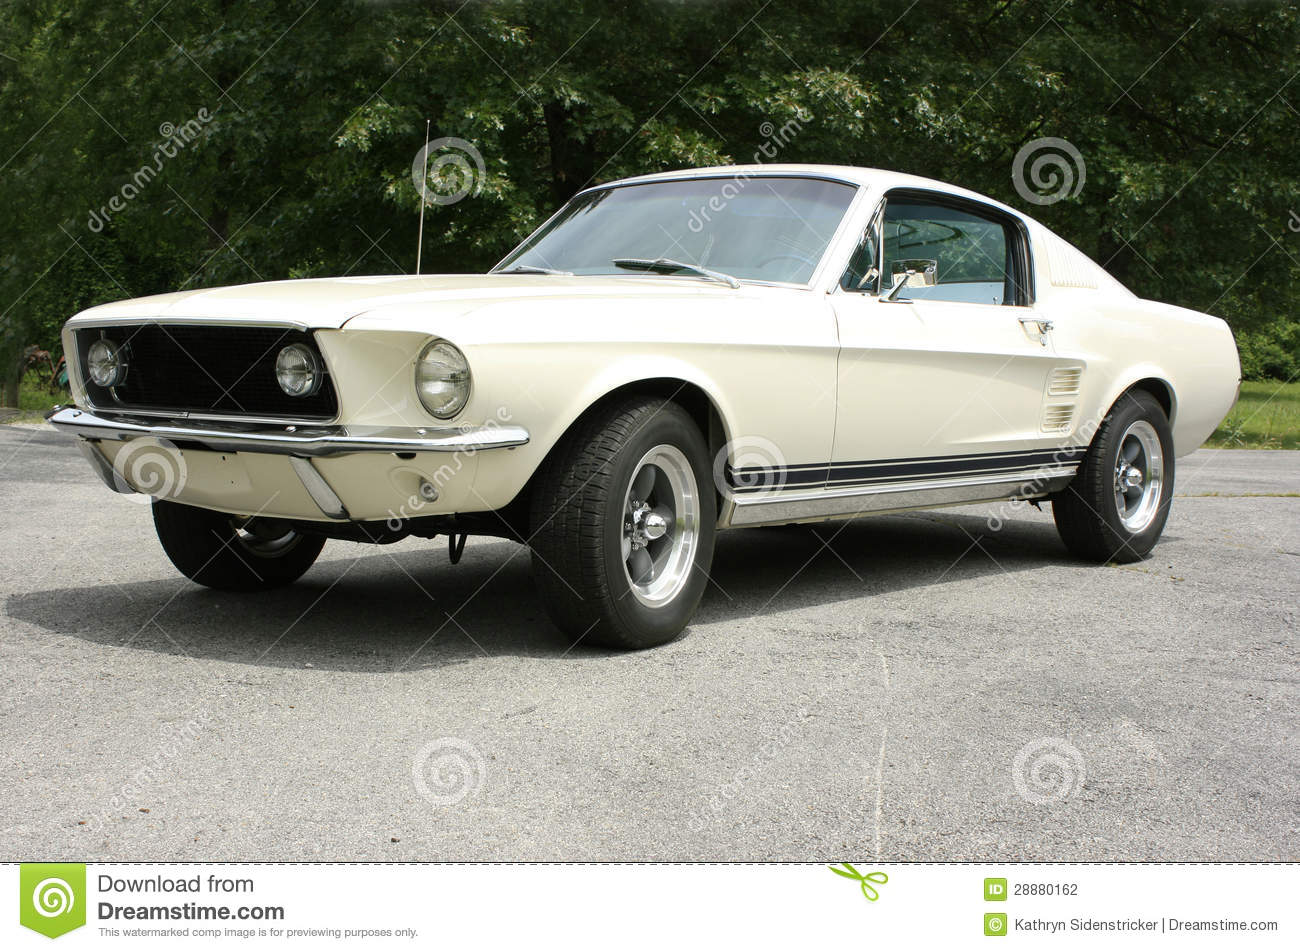 1967 ford mustang fastback restored stock photo image of lamp light 28880162. Black Bedroom Furniture Sets. Home Design Ideas